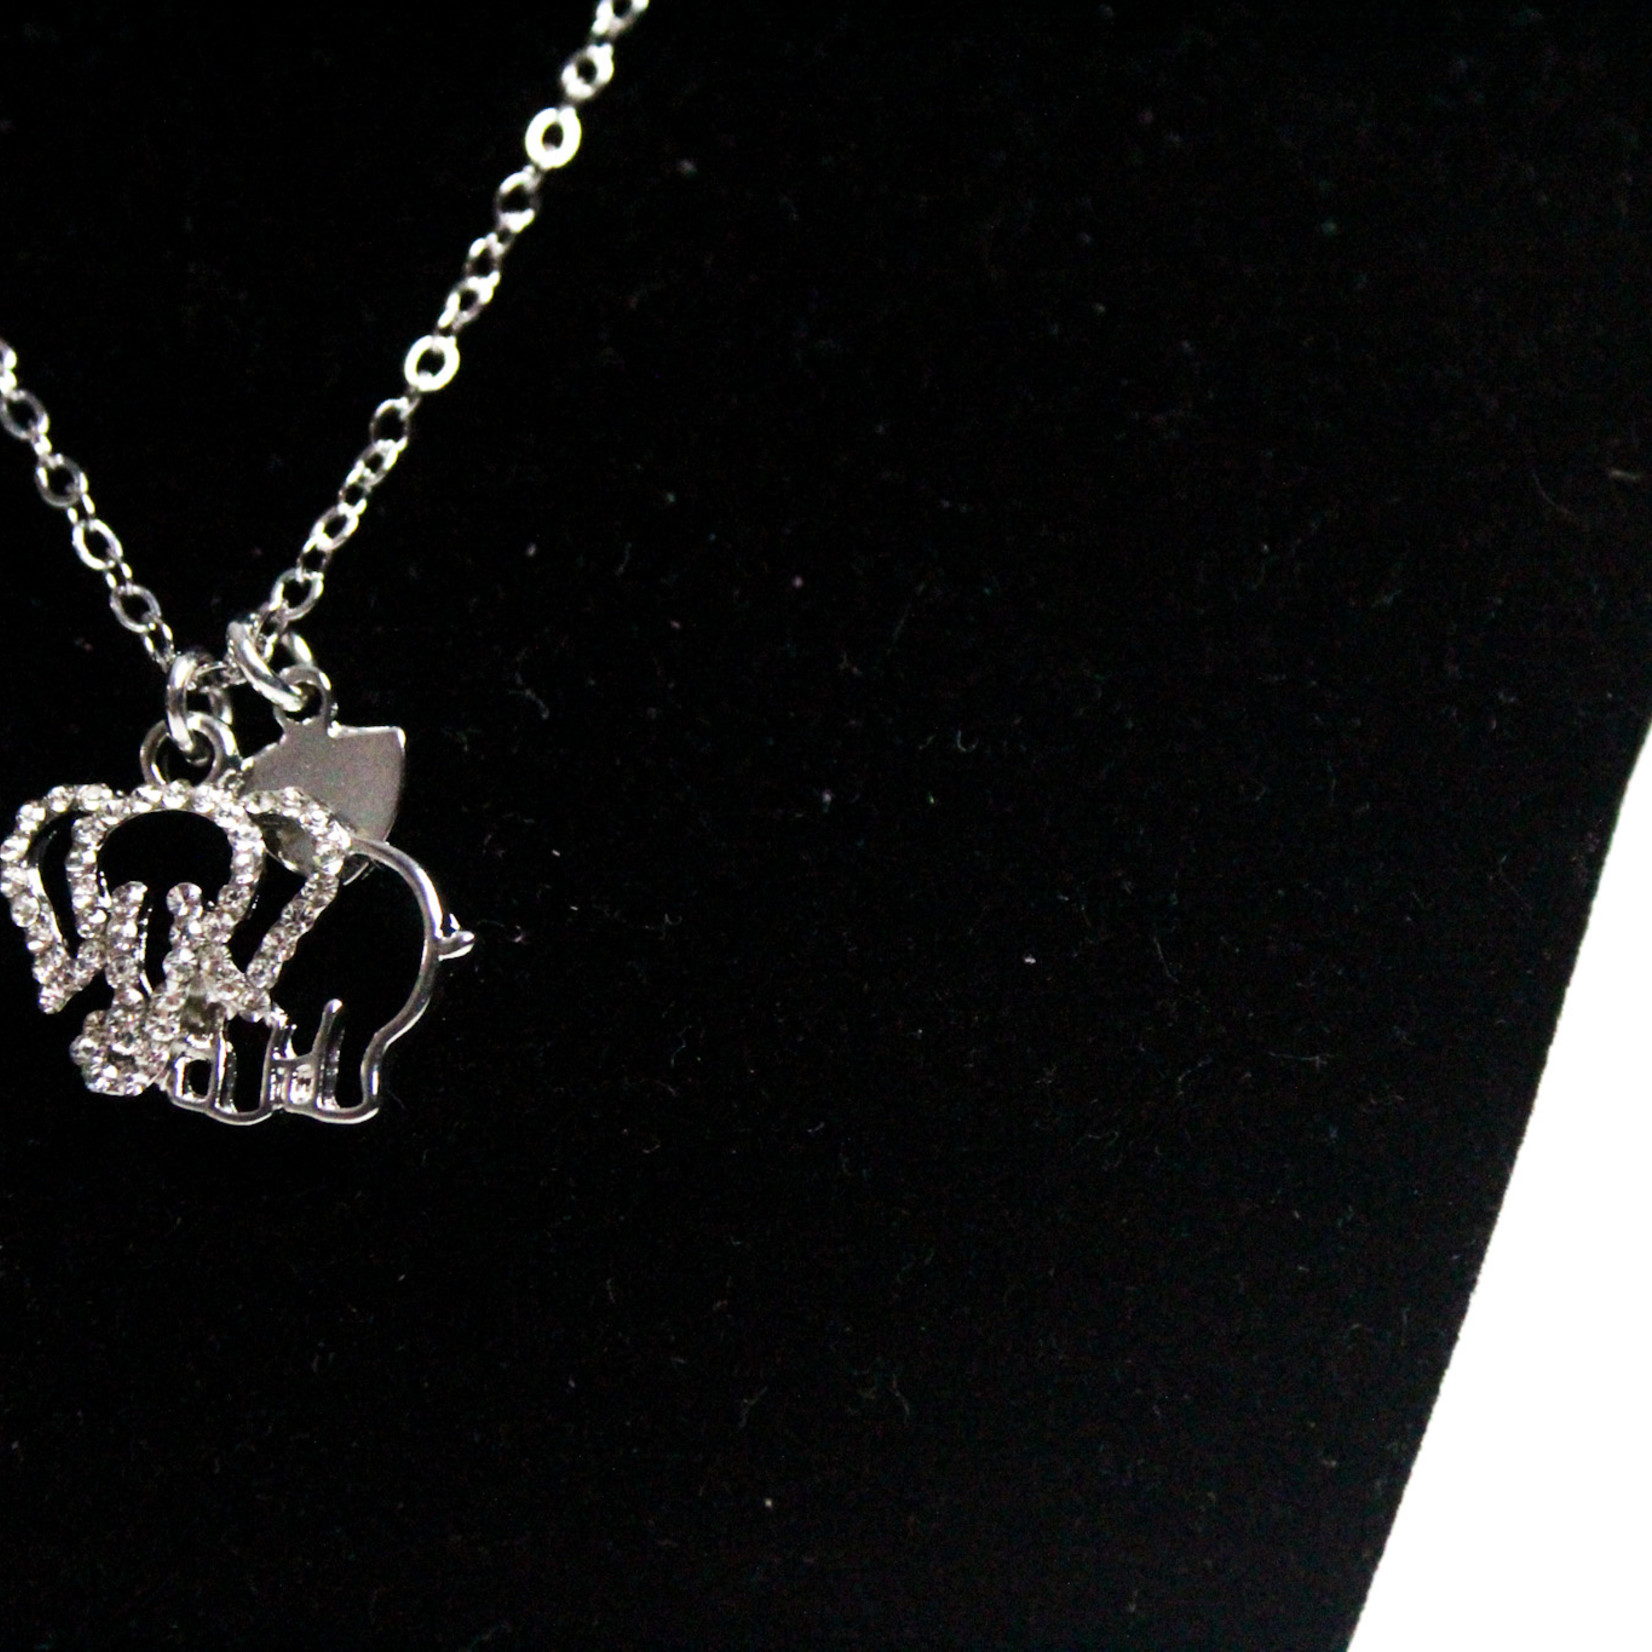 Best Friends CTR Shimmer Necklaces